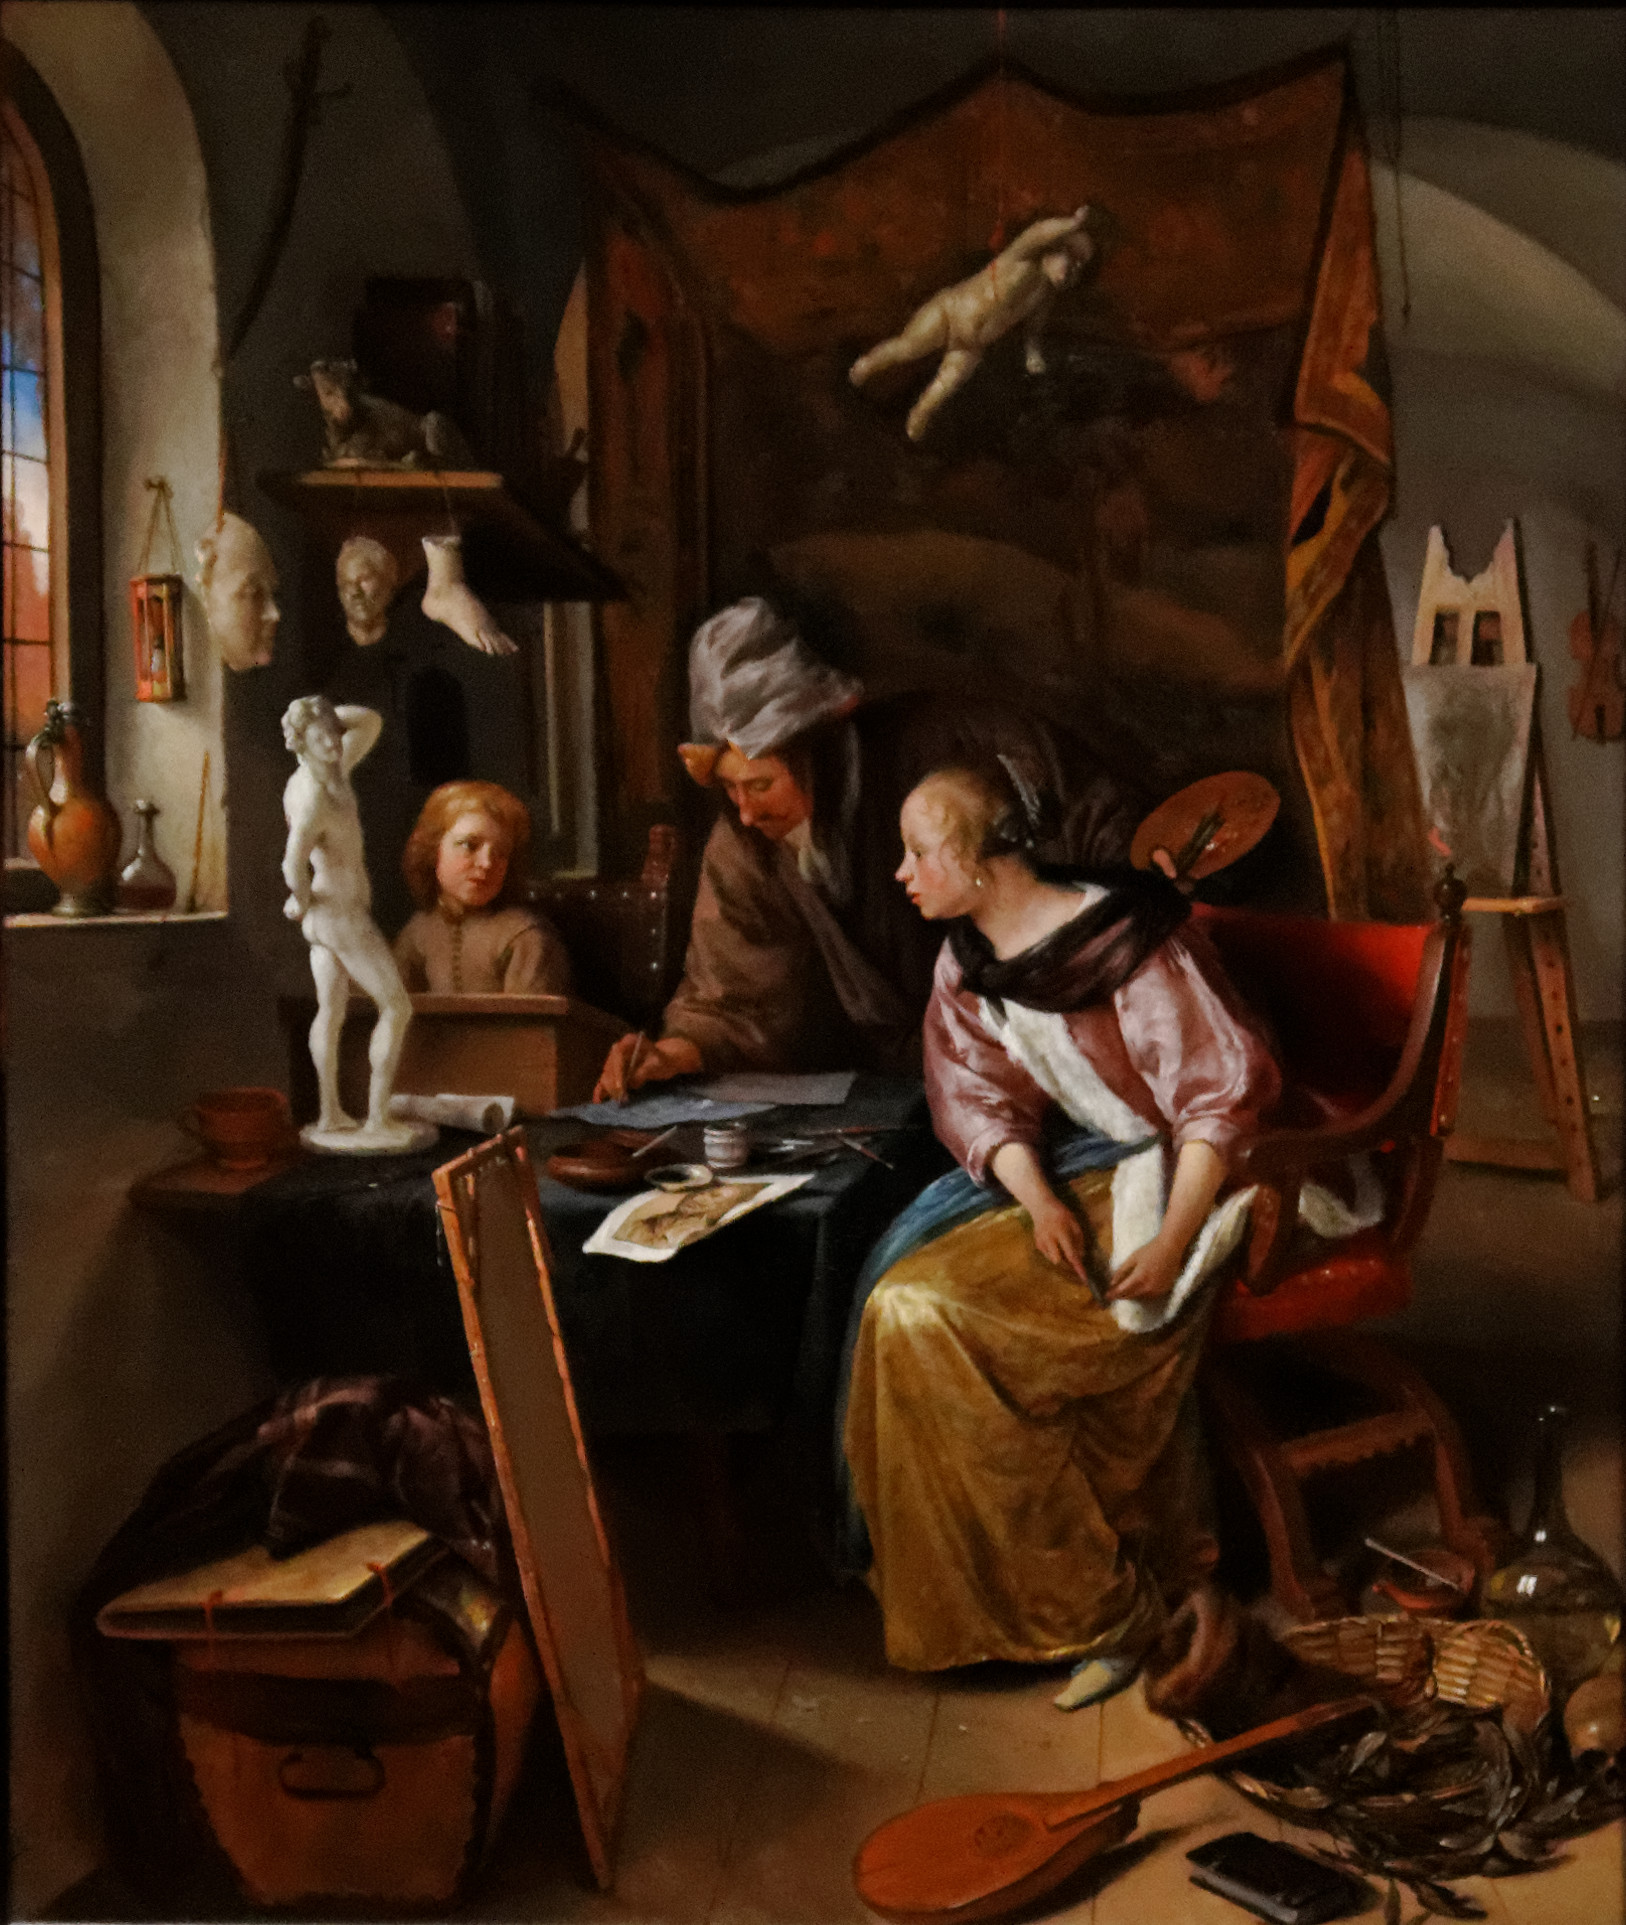 File:Jan Steen - The Drawing Lesson.jpg - Wikimedia Commons